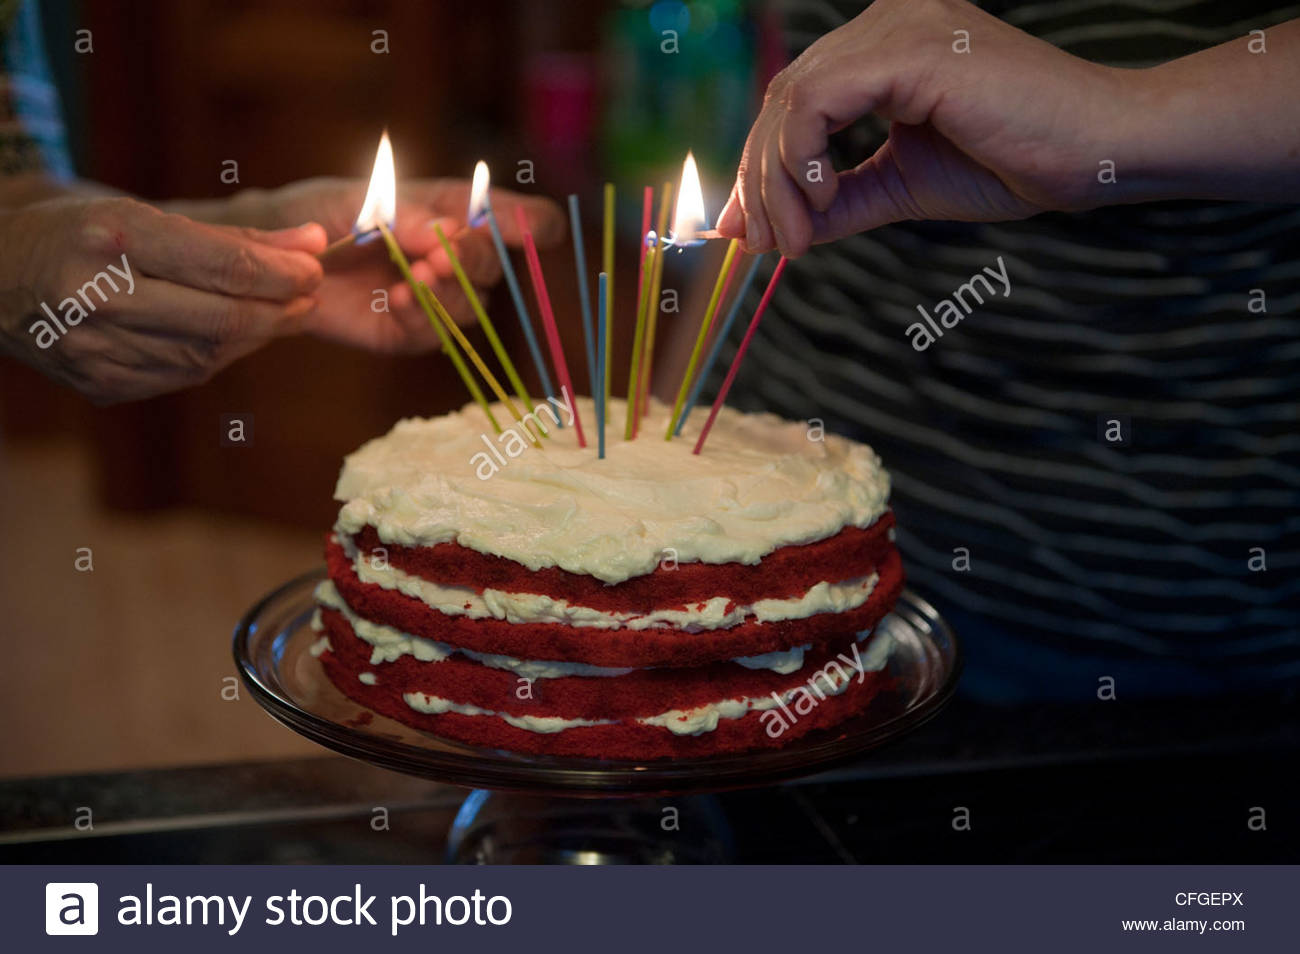 Candles Are Lit On A Birthday Cake